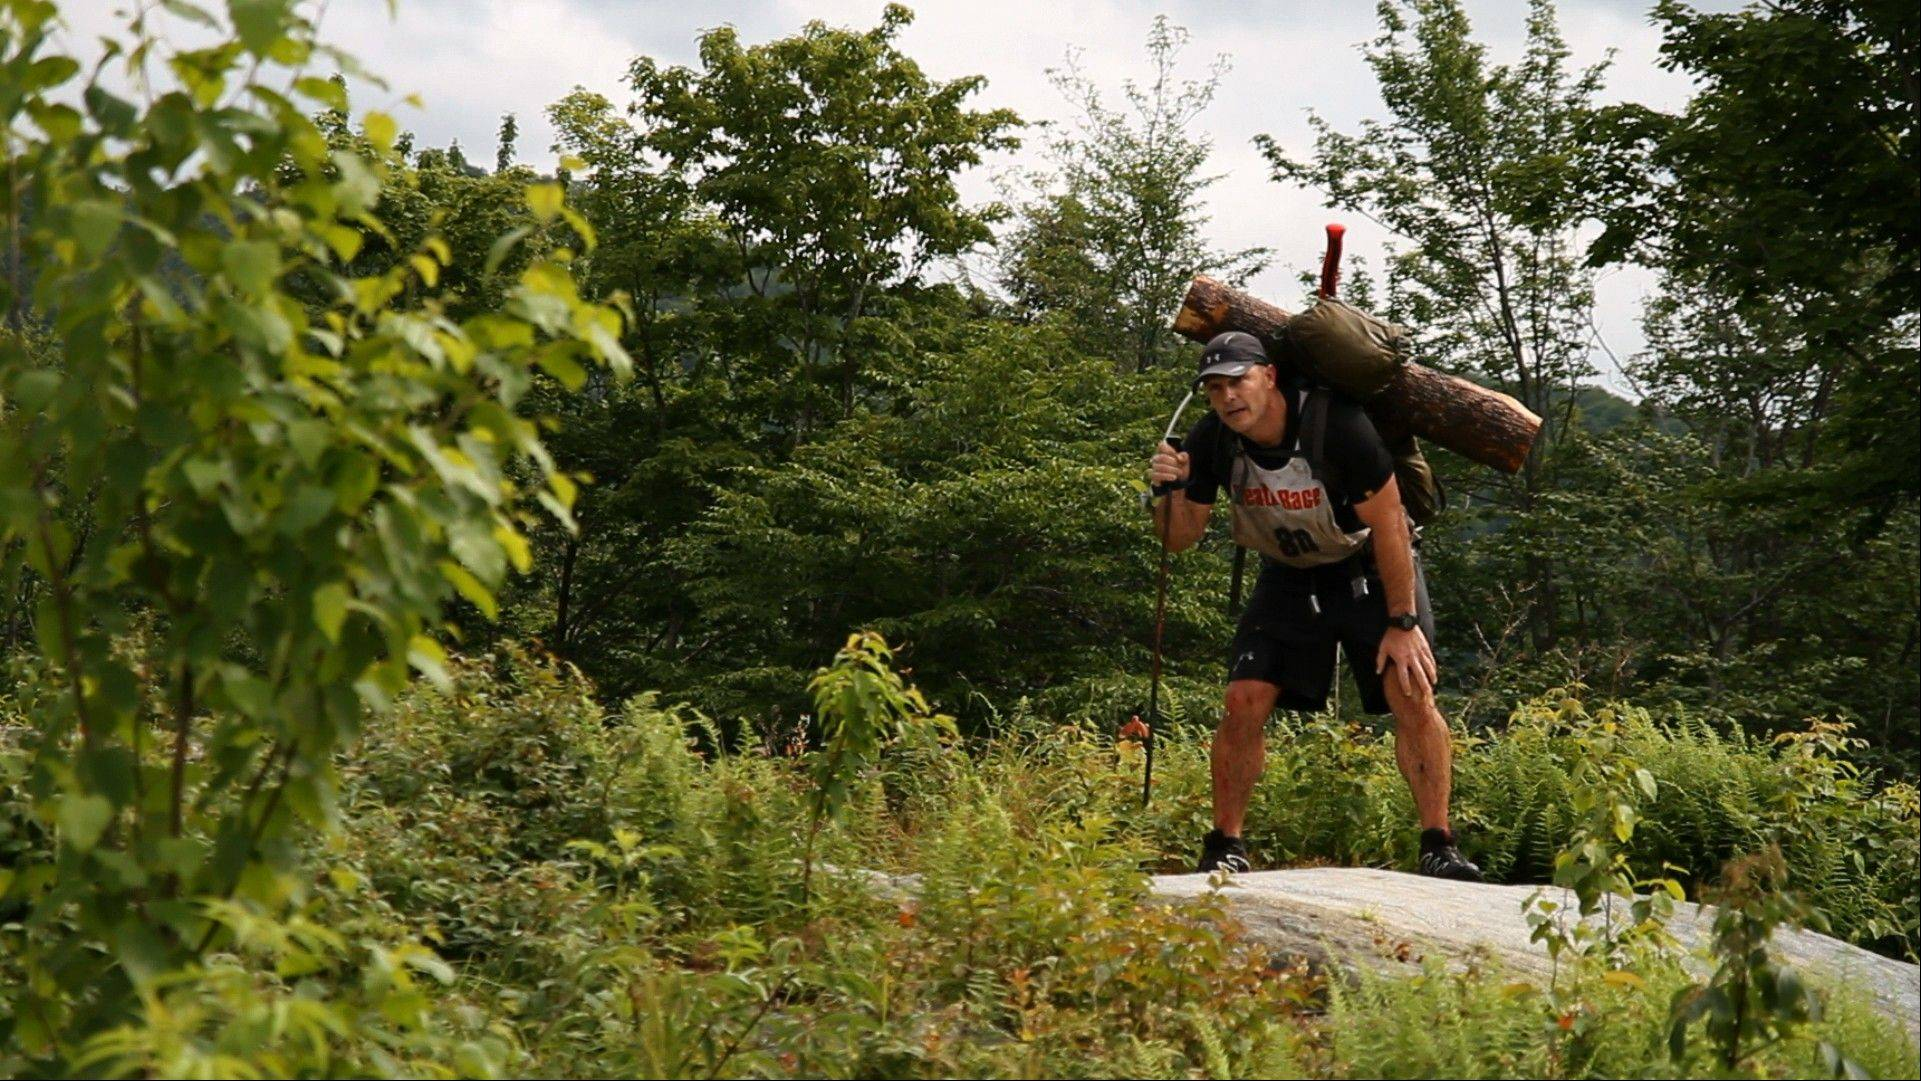 The 2011 winner, Joe Decker, hoists a log as he traverses the Death Race course last year.